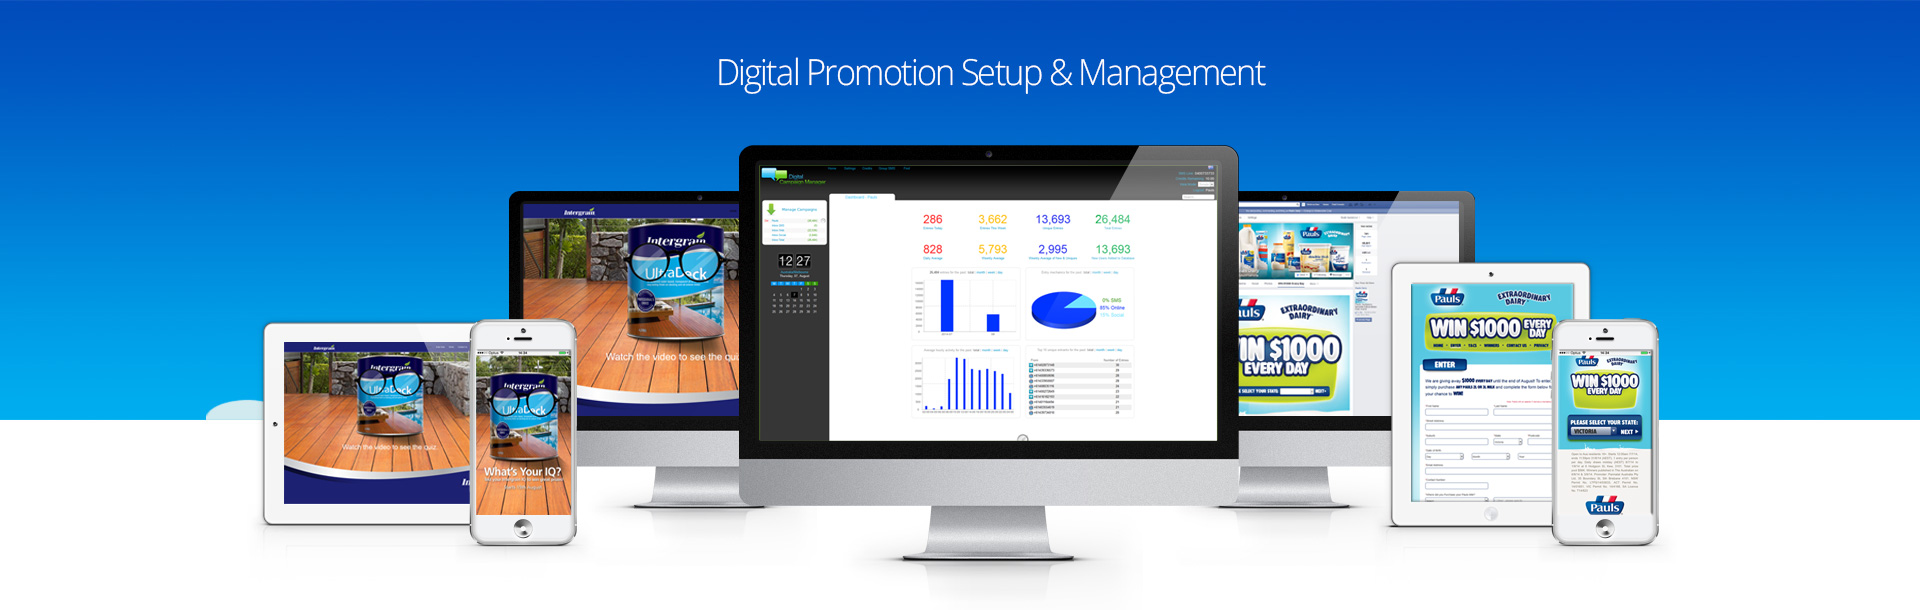 Digital Promotion Setup and Managment